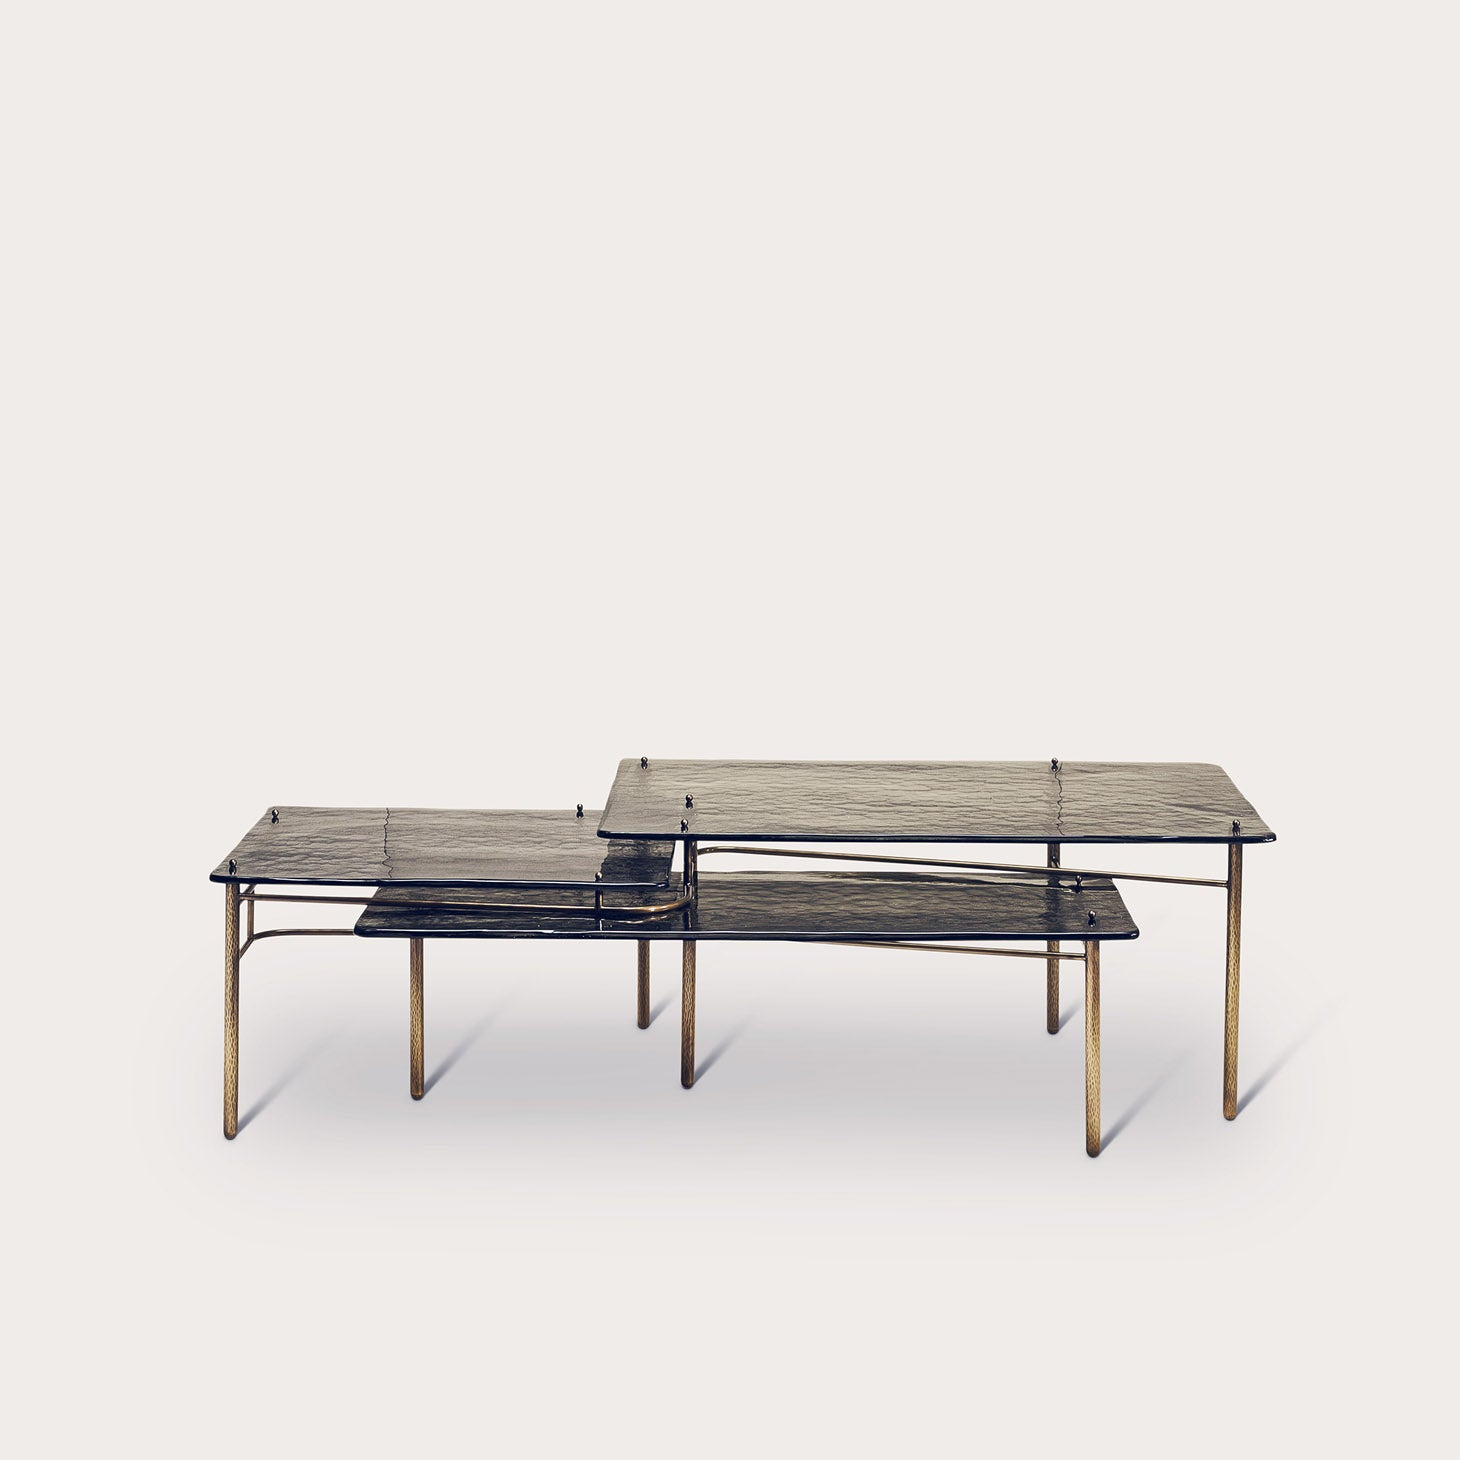 TARI Tables Bruno Moinard Designer Furniture Sku: 773-230-10007